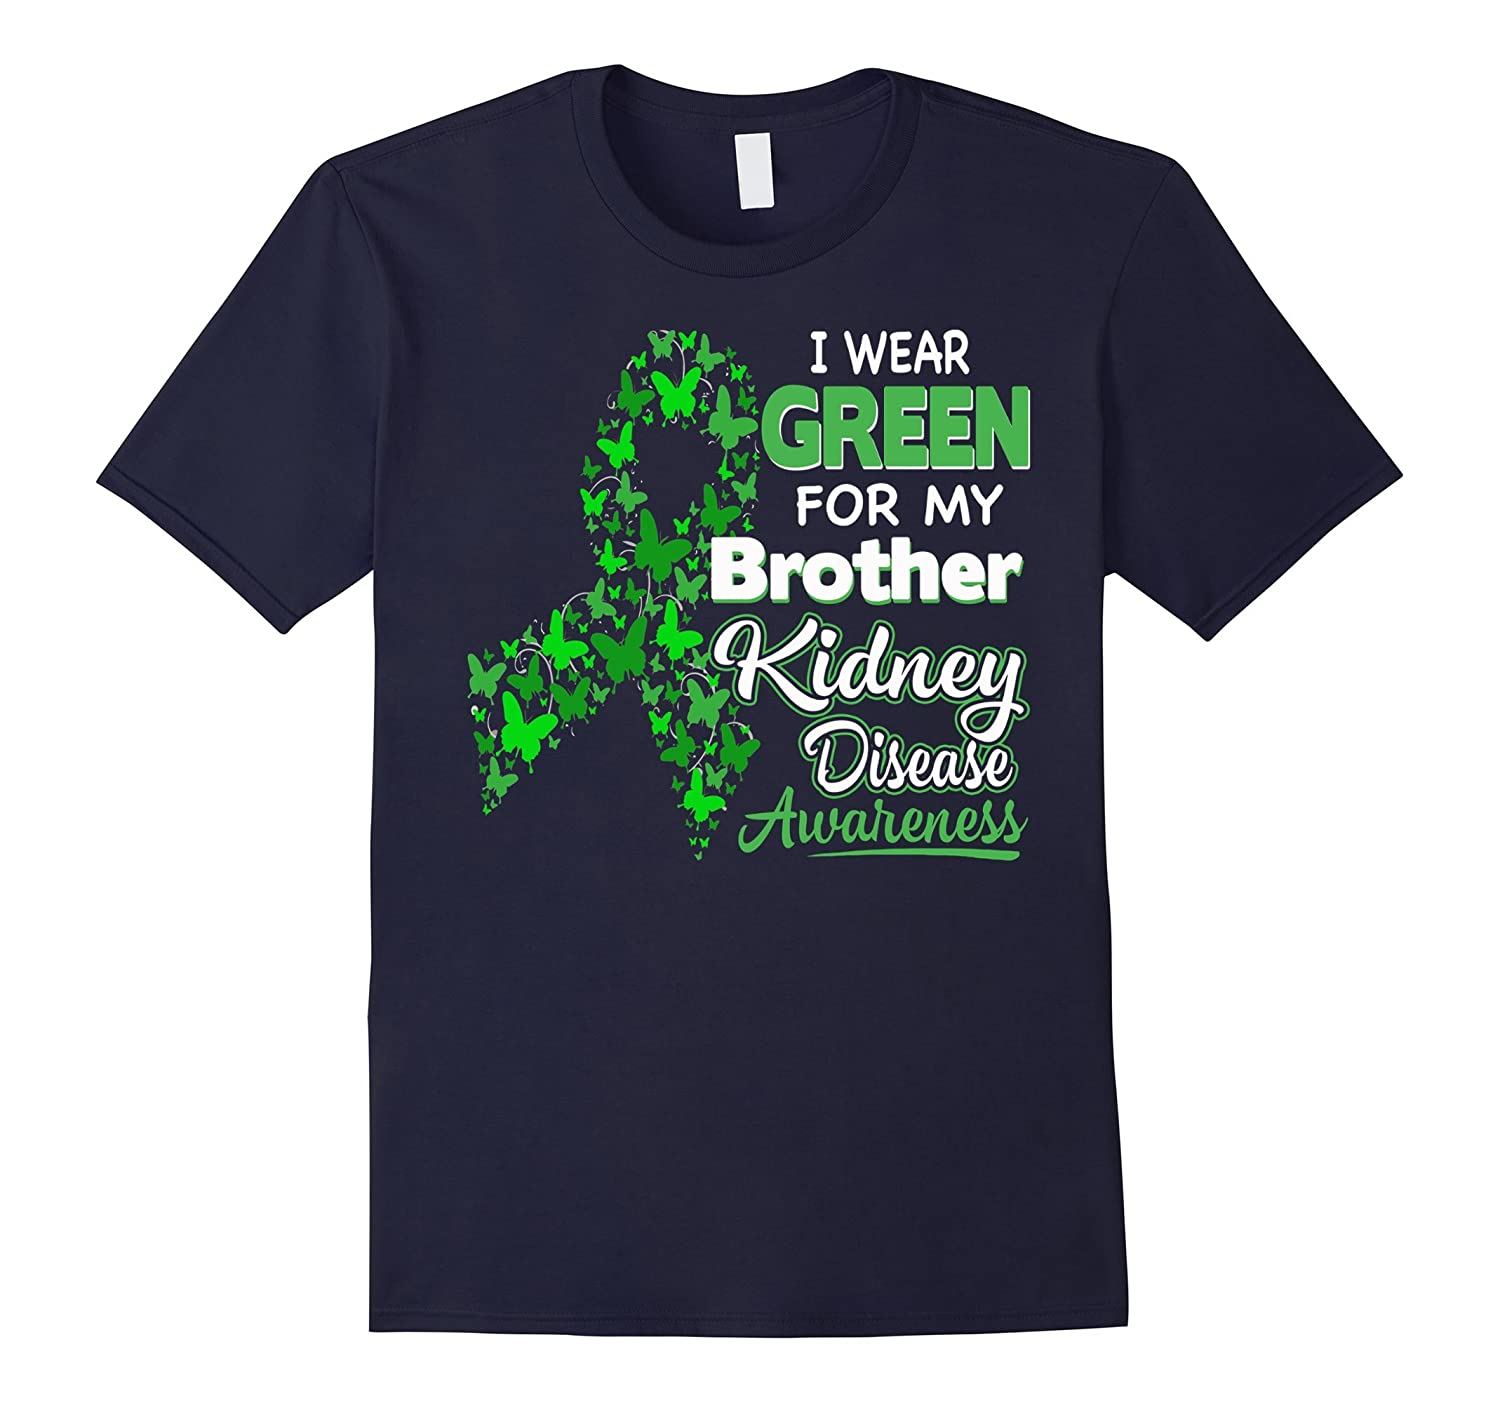 I wear Green for my Brother - Kidney Disease Awareness Shirt-TH